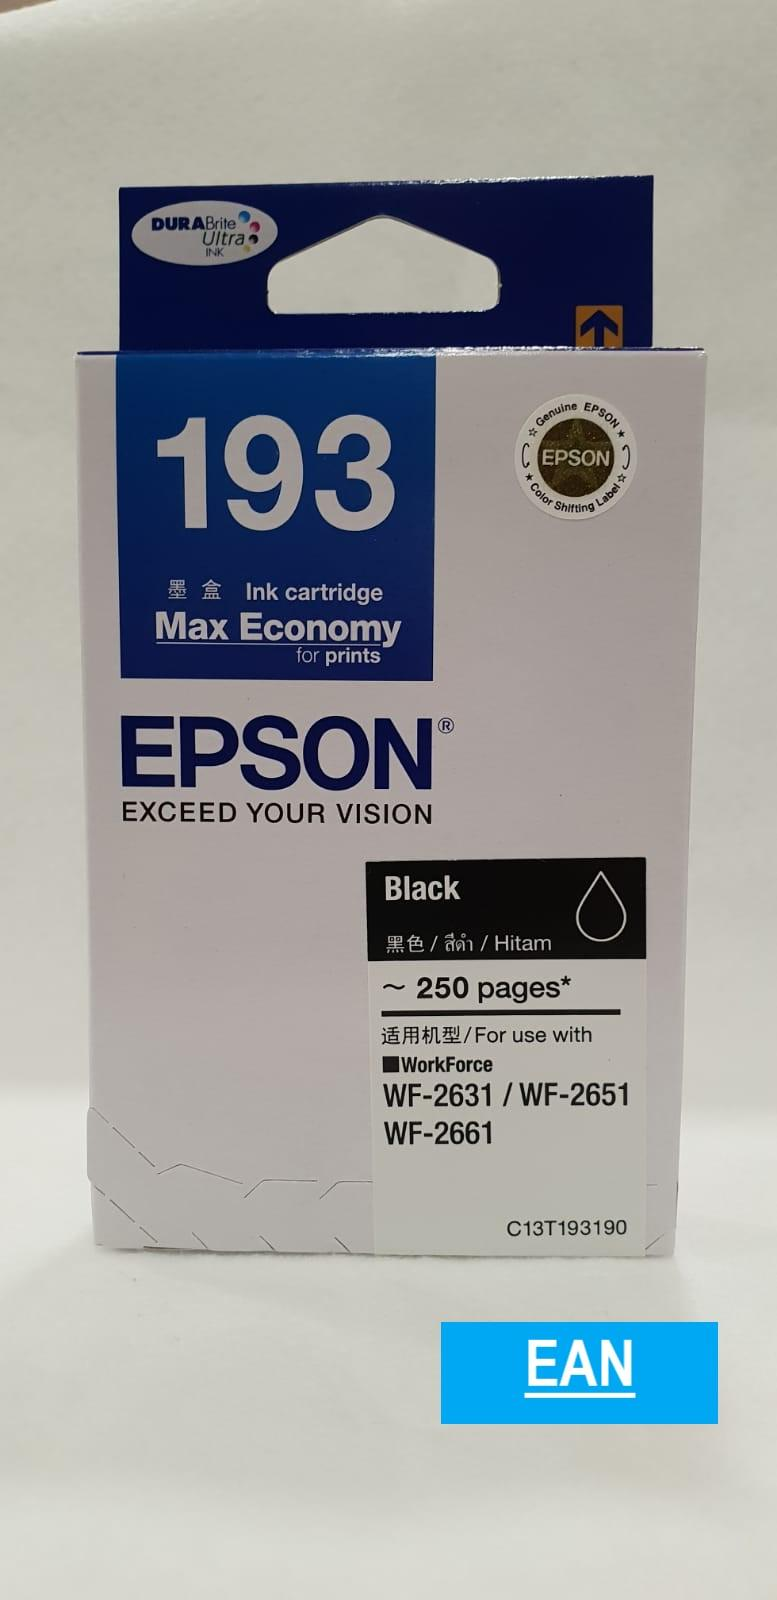 Buy Sell Cheapest Epson T6641 Black Best Quality Product Deals Tinta Printer Hitam T193 Ink Cartridge For Wf 2631 Wf2651 Wf2661 C13t193190 193 T1931 T193190